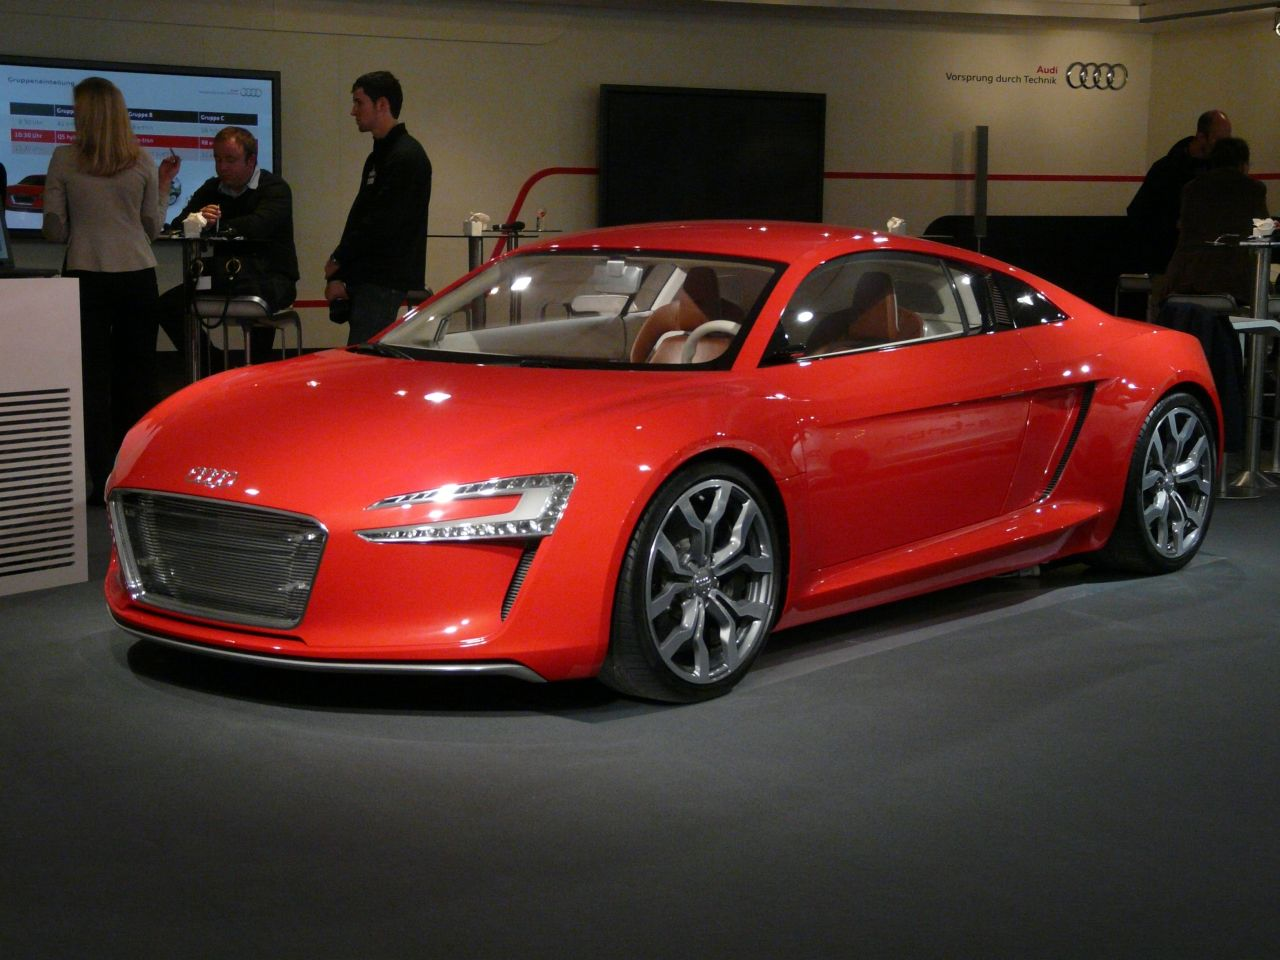 2013 audi r8 e tron not for production car information news reviews videos photos. Black Bedroom Furniture Sets. Home Design Ideas